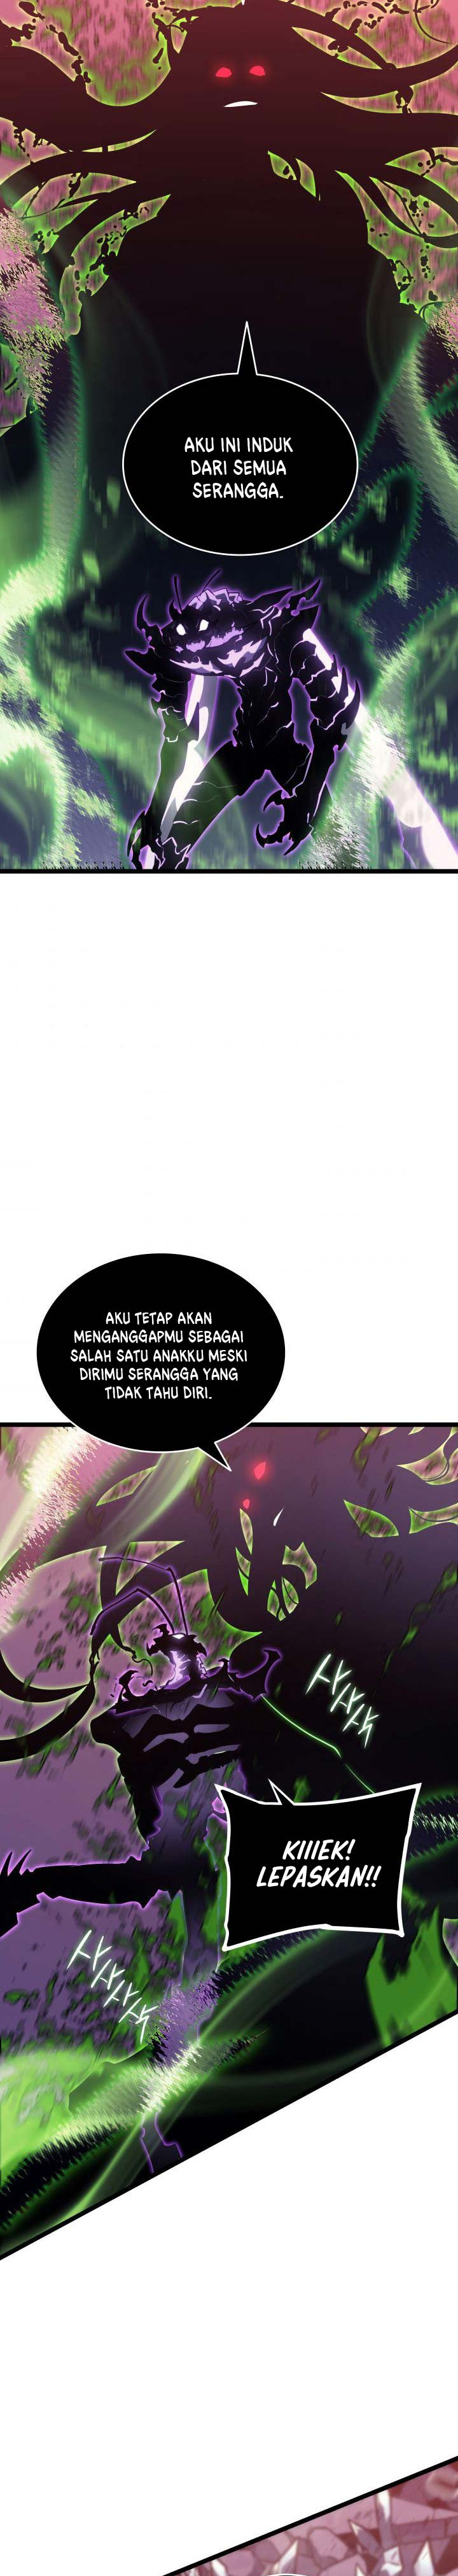 Solo Leveling: Chapter 159 - Page 27